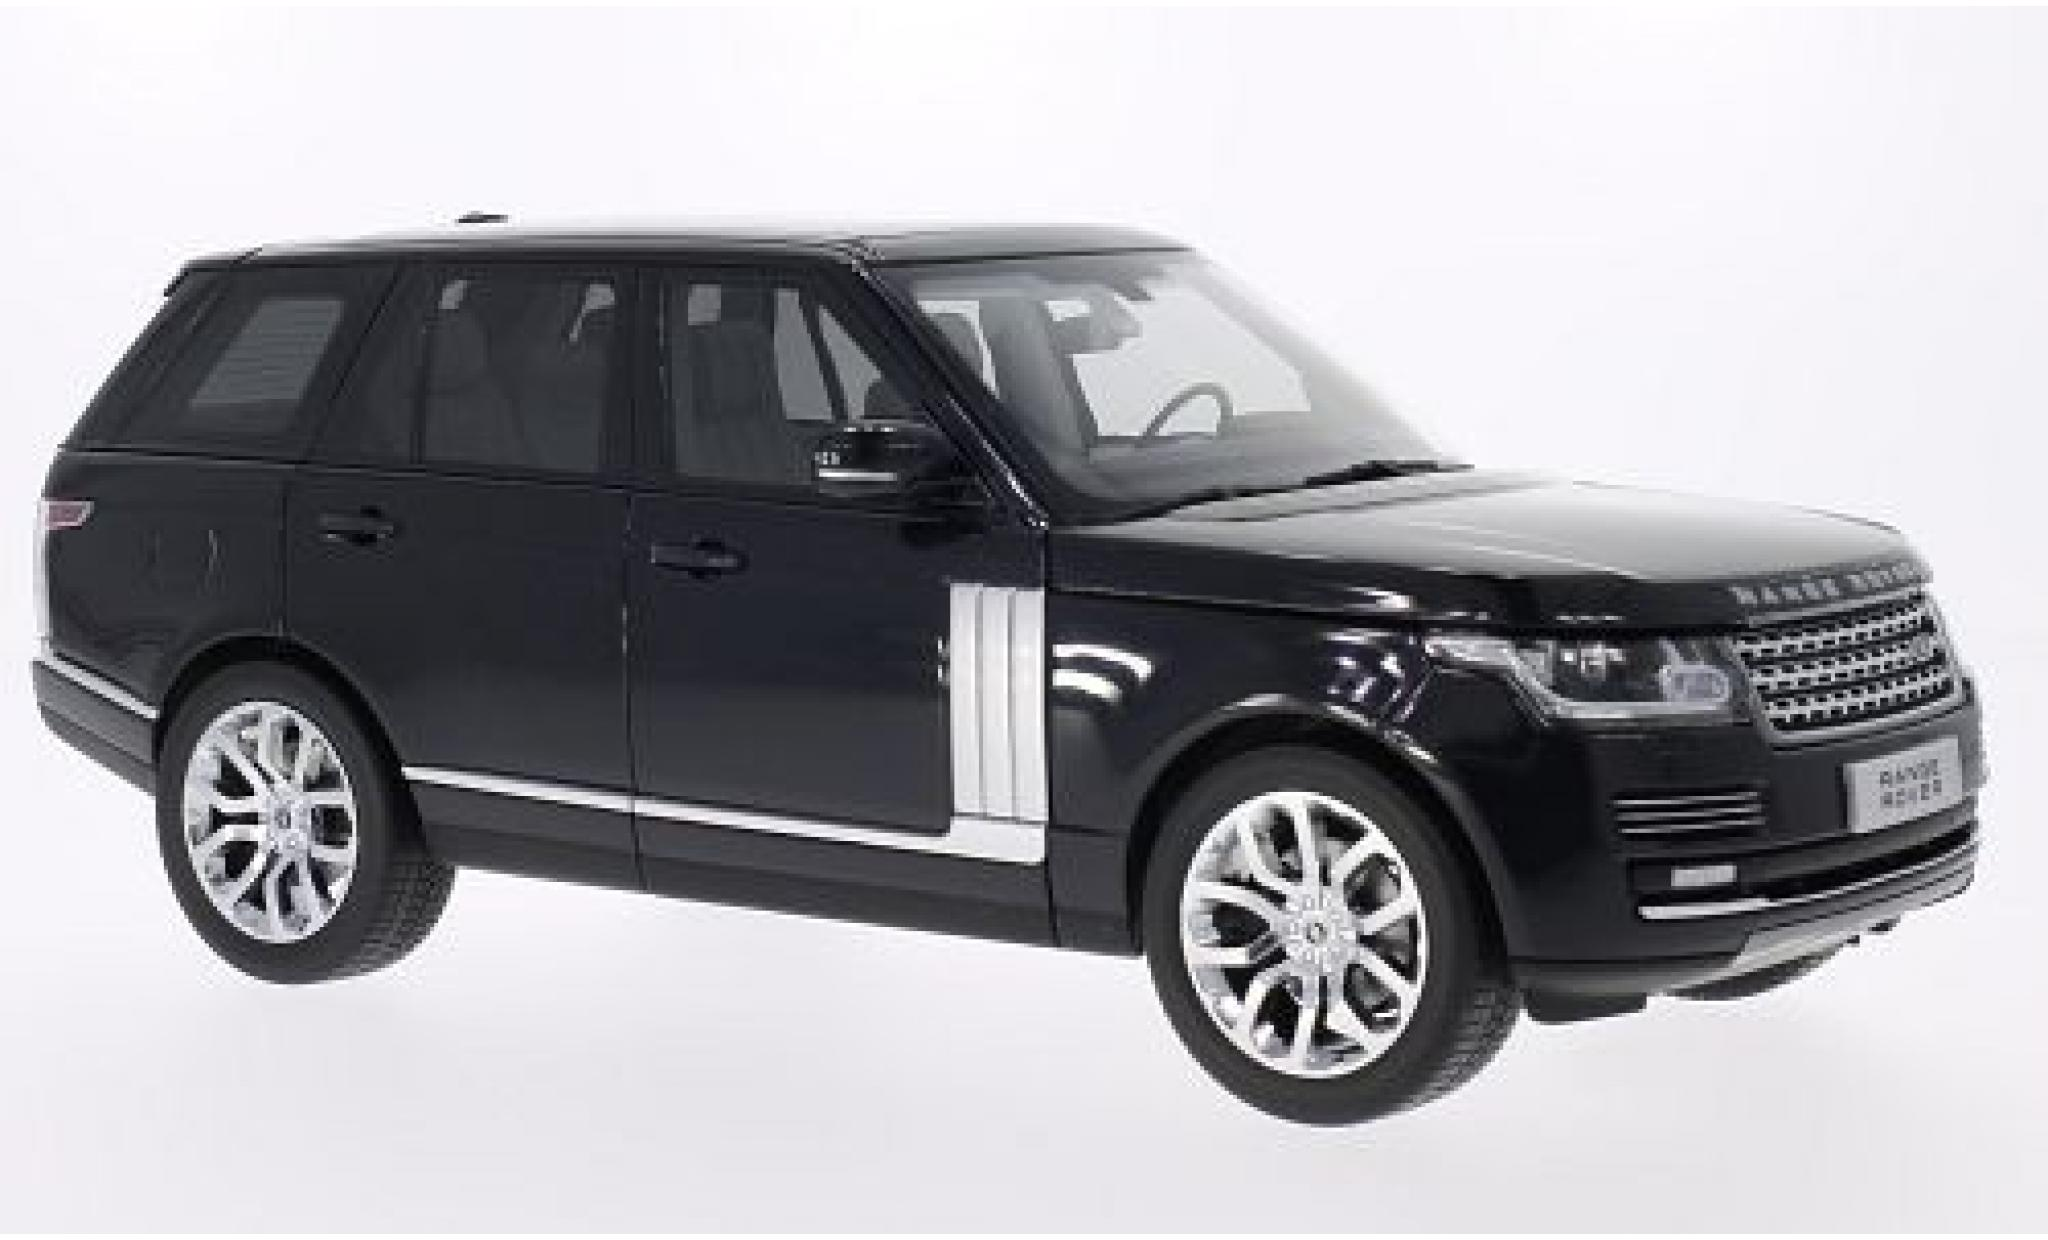 Land Rover Range Rover 1/18 Welly metallise noire 2013 GTA Edition